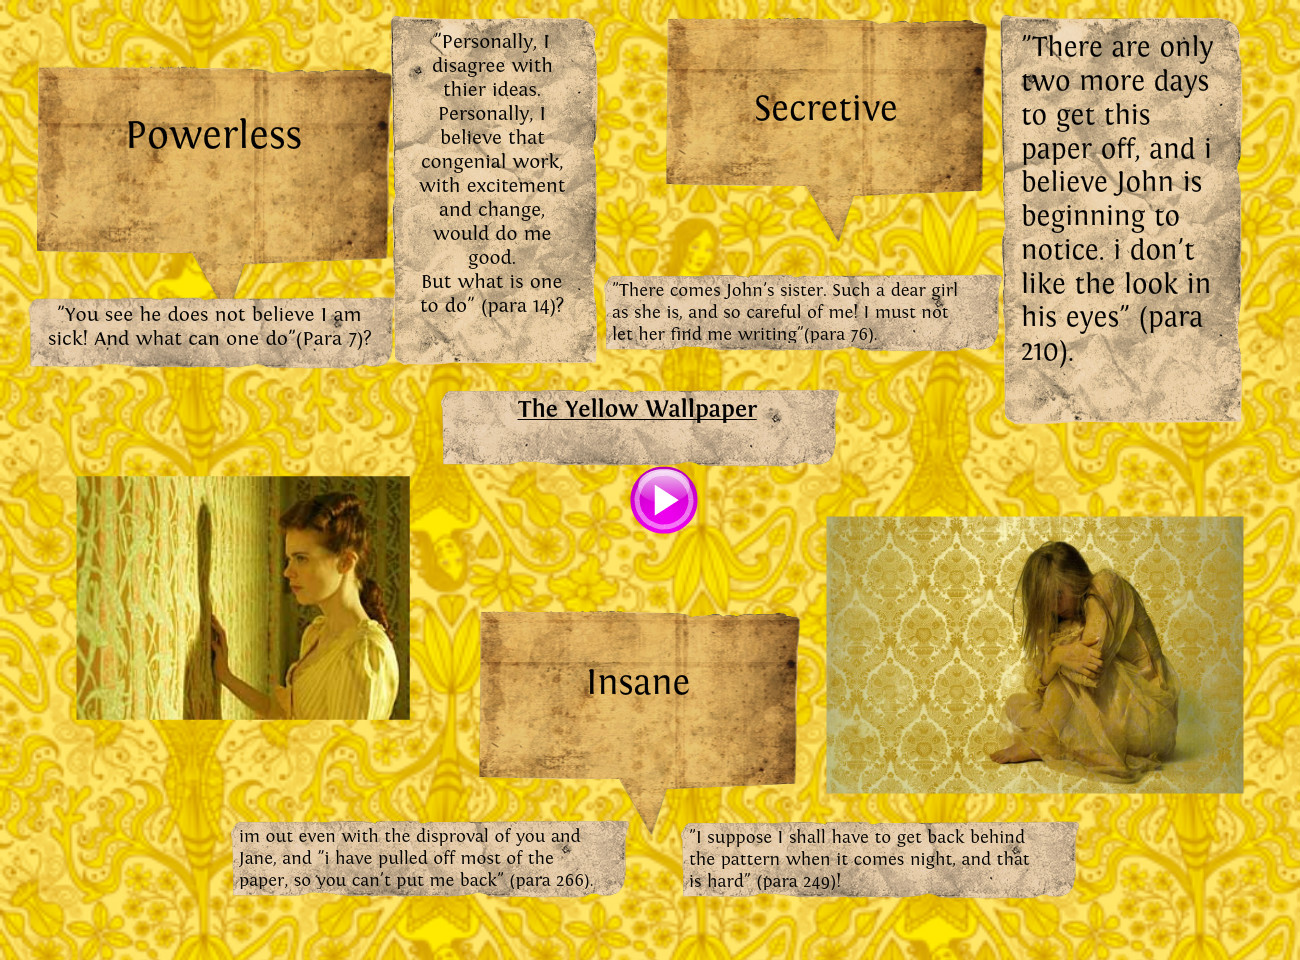 the yellow wallpaper breaking free essay In the yellow wallpaper, originally published in 1899, charlotte gilman presents the internal dialogue of a woman diagnosed with hysteria- and for whom total rest has been prescribed.